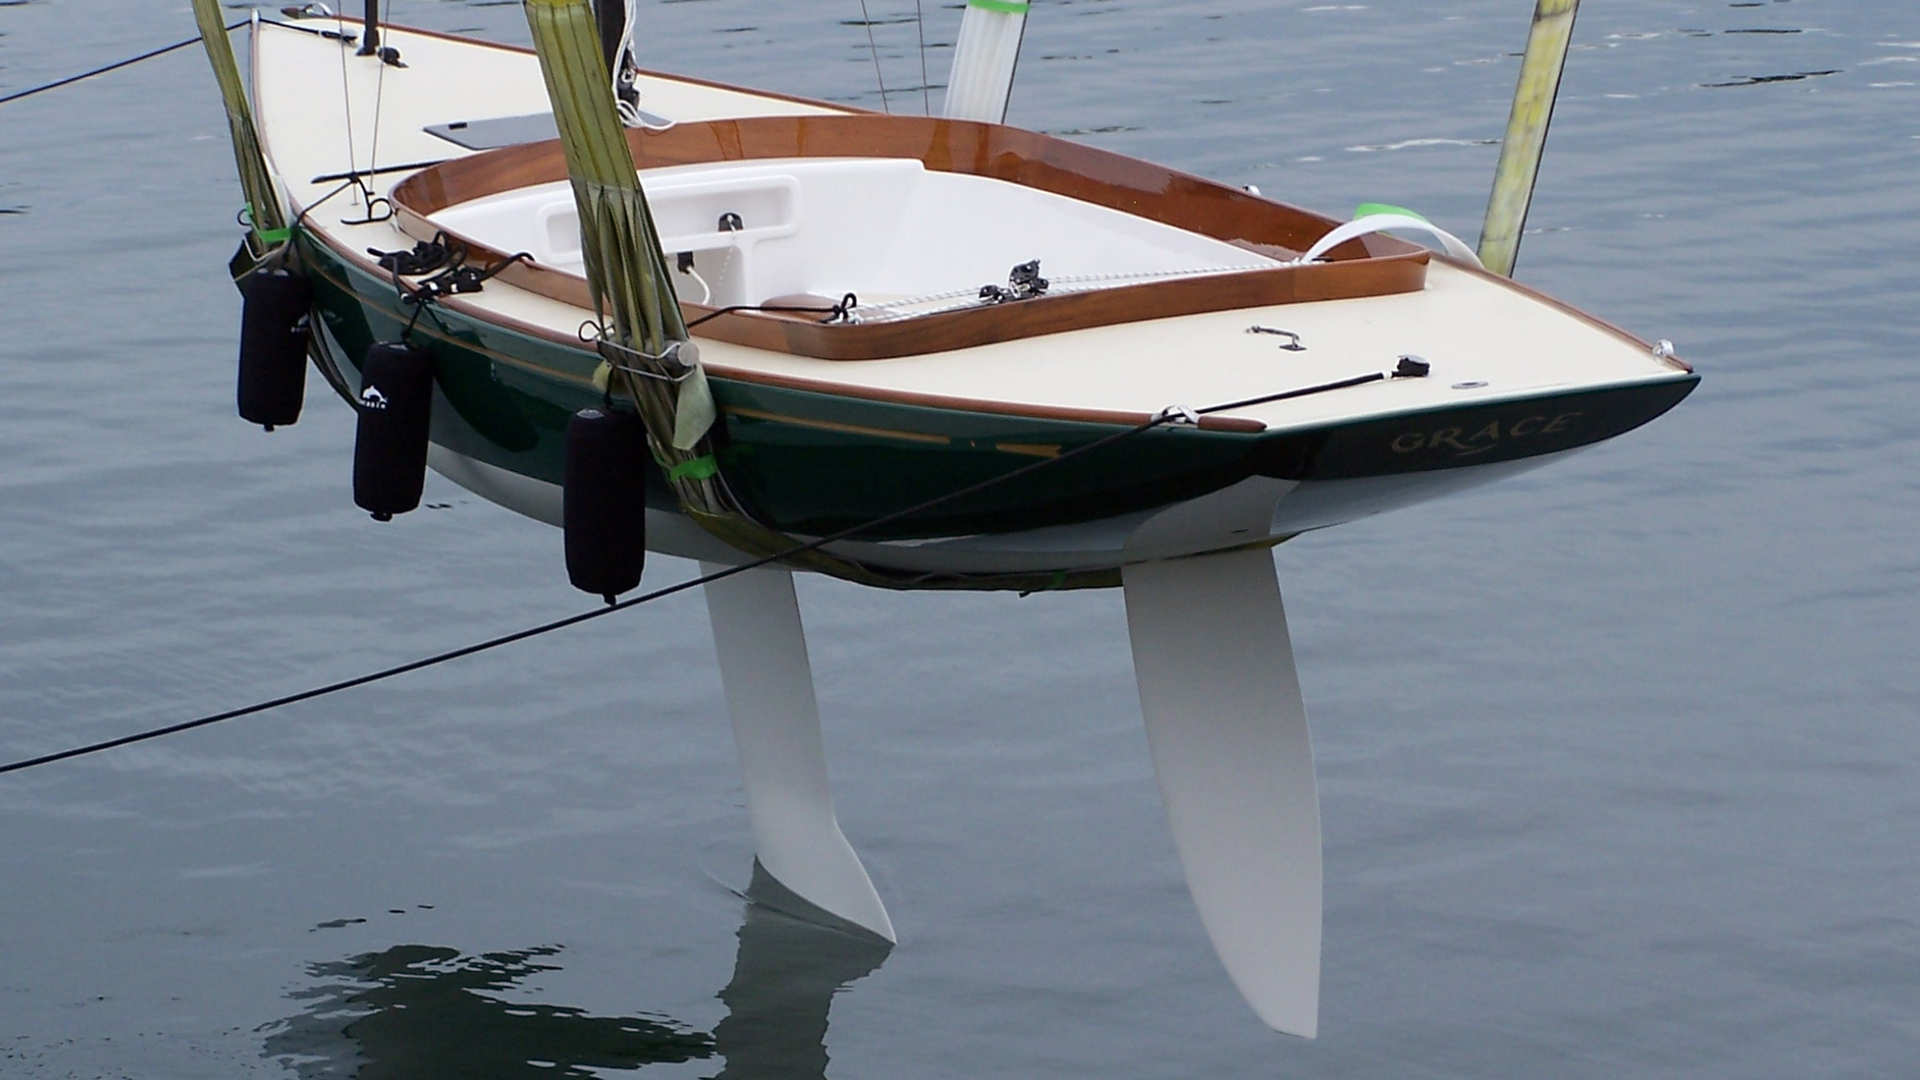 4' draft keel and carbon rudder.